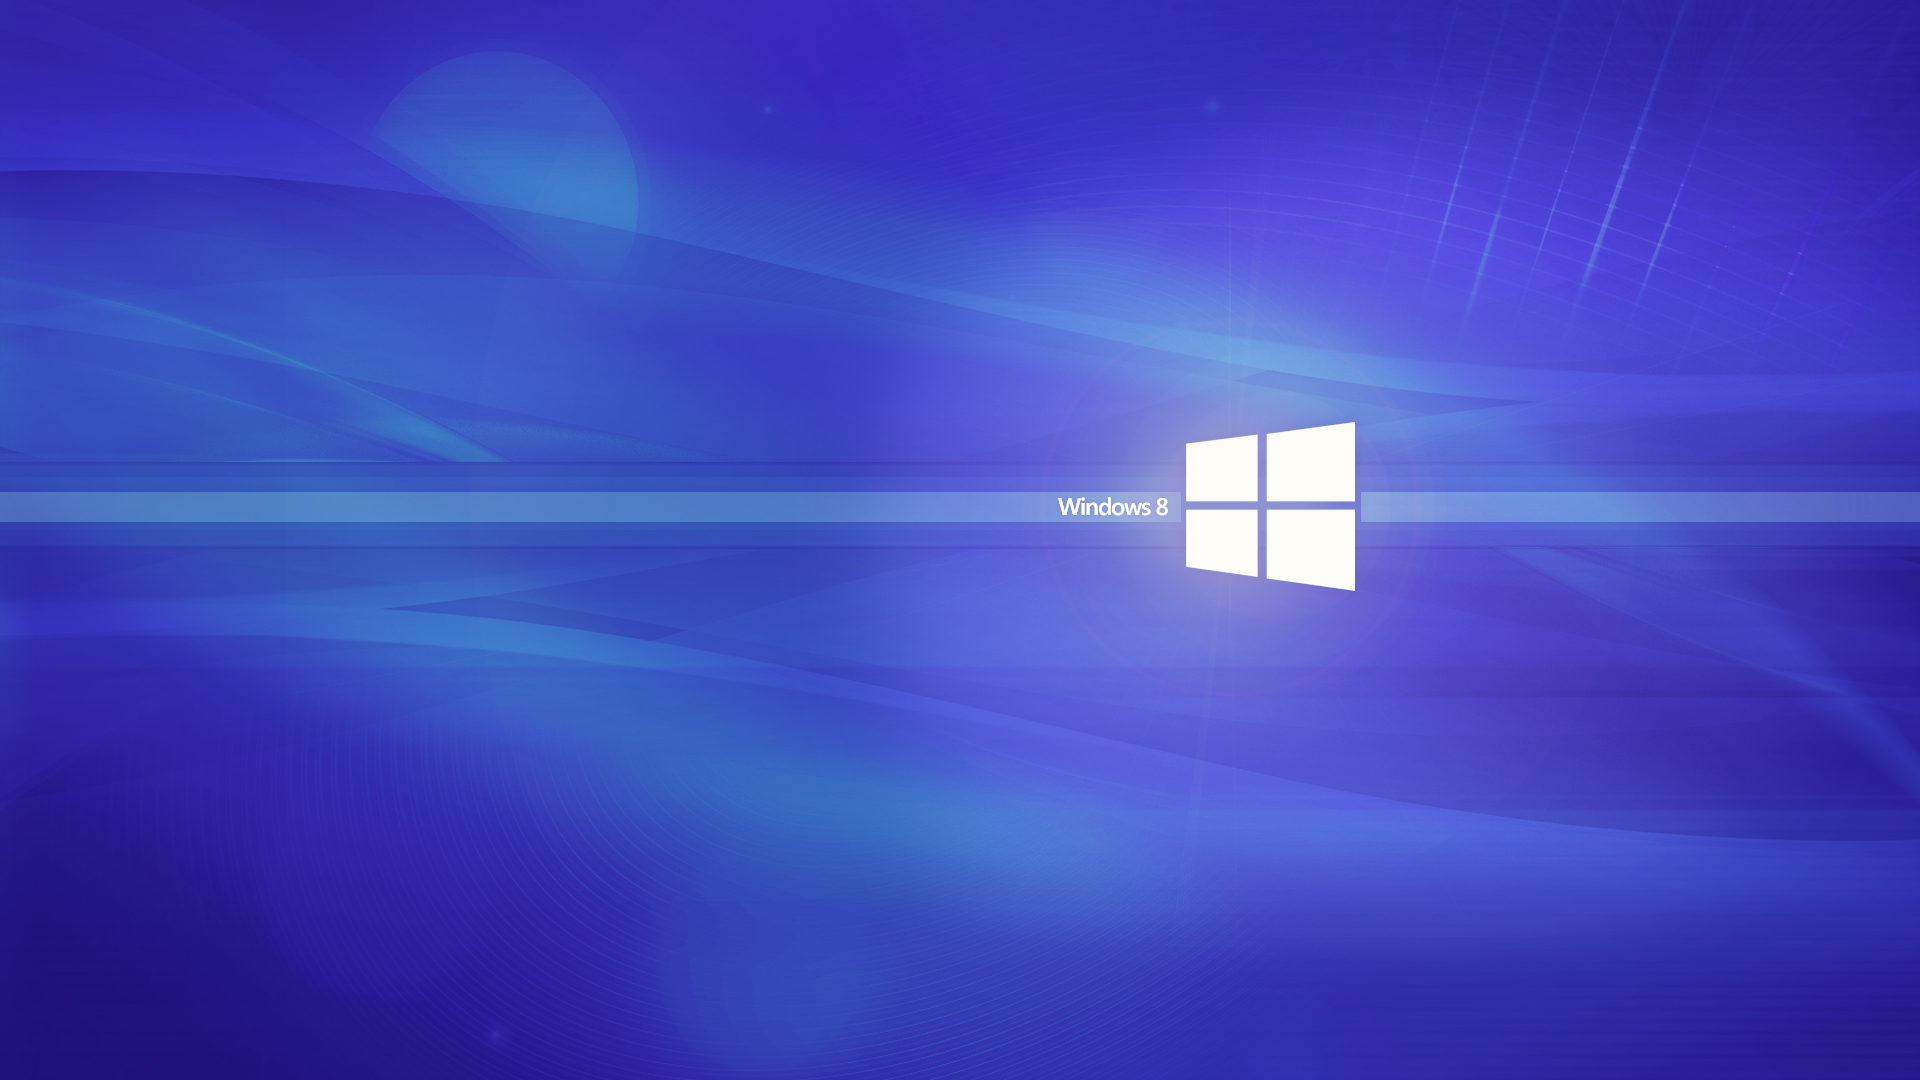 Windows 8 1 Wallpaper Hd Free Download 55 Windows 8 Wallpapers In Hd For Free Download